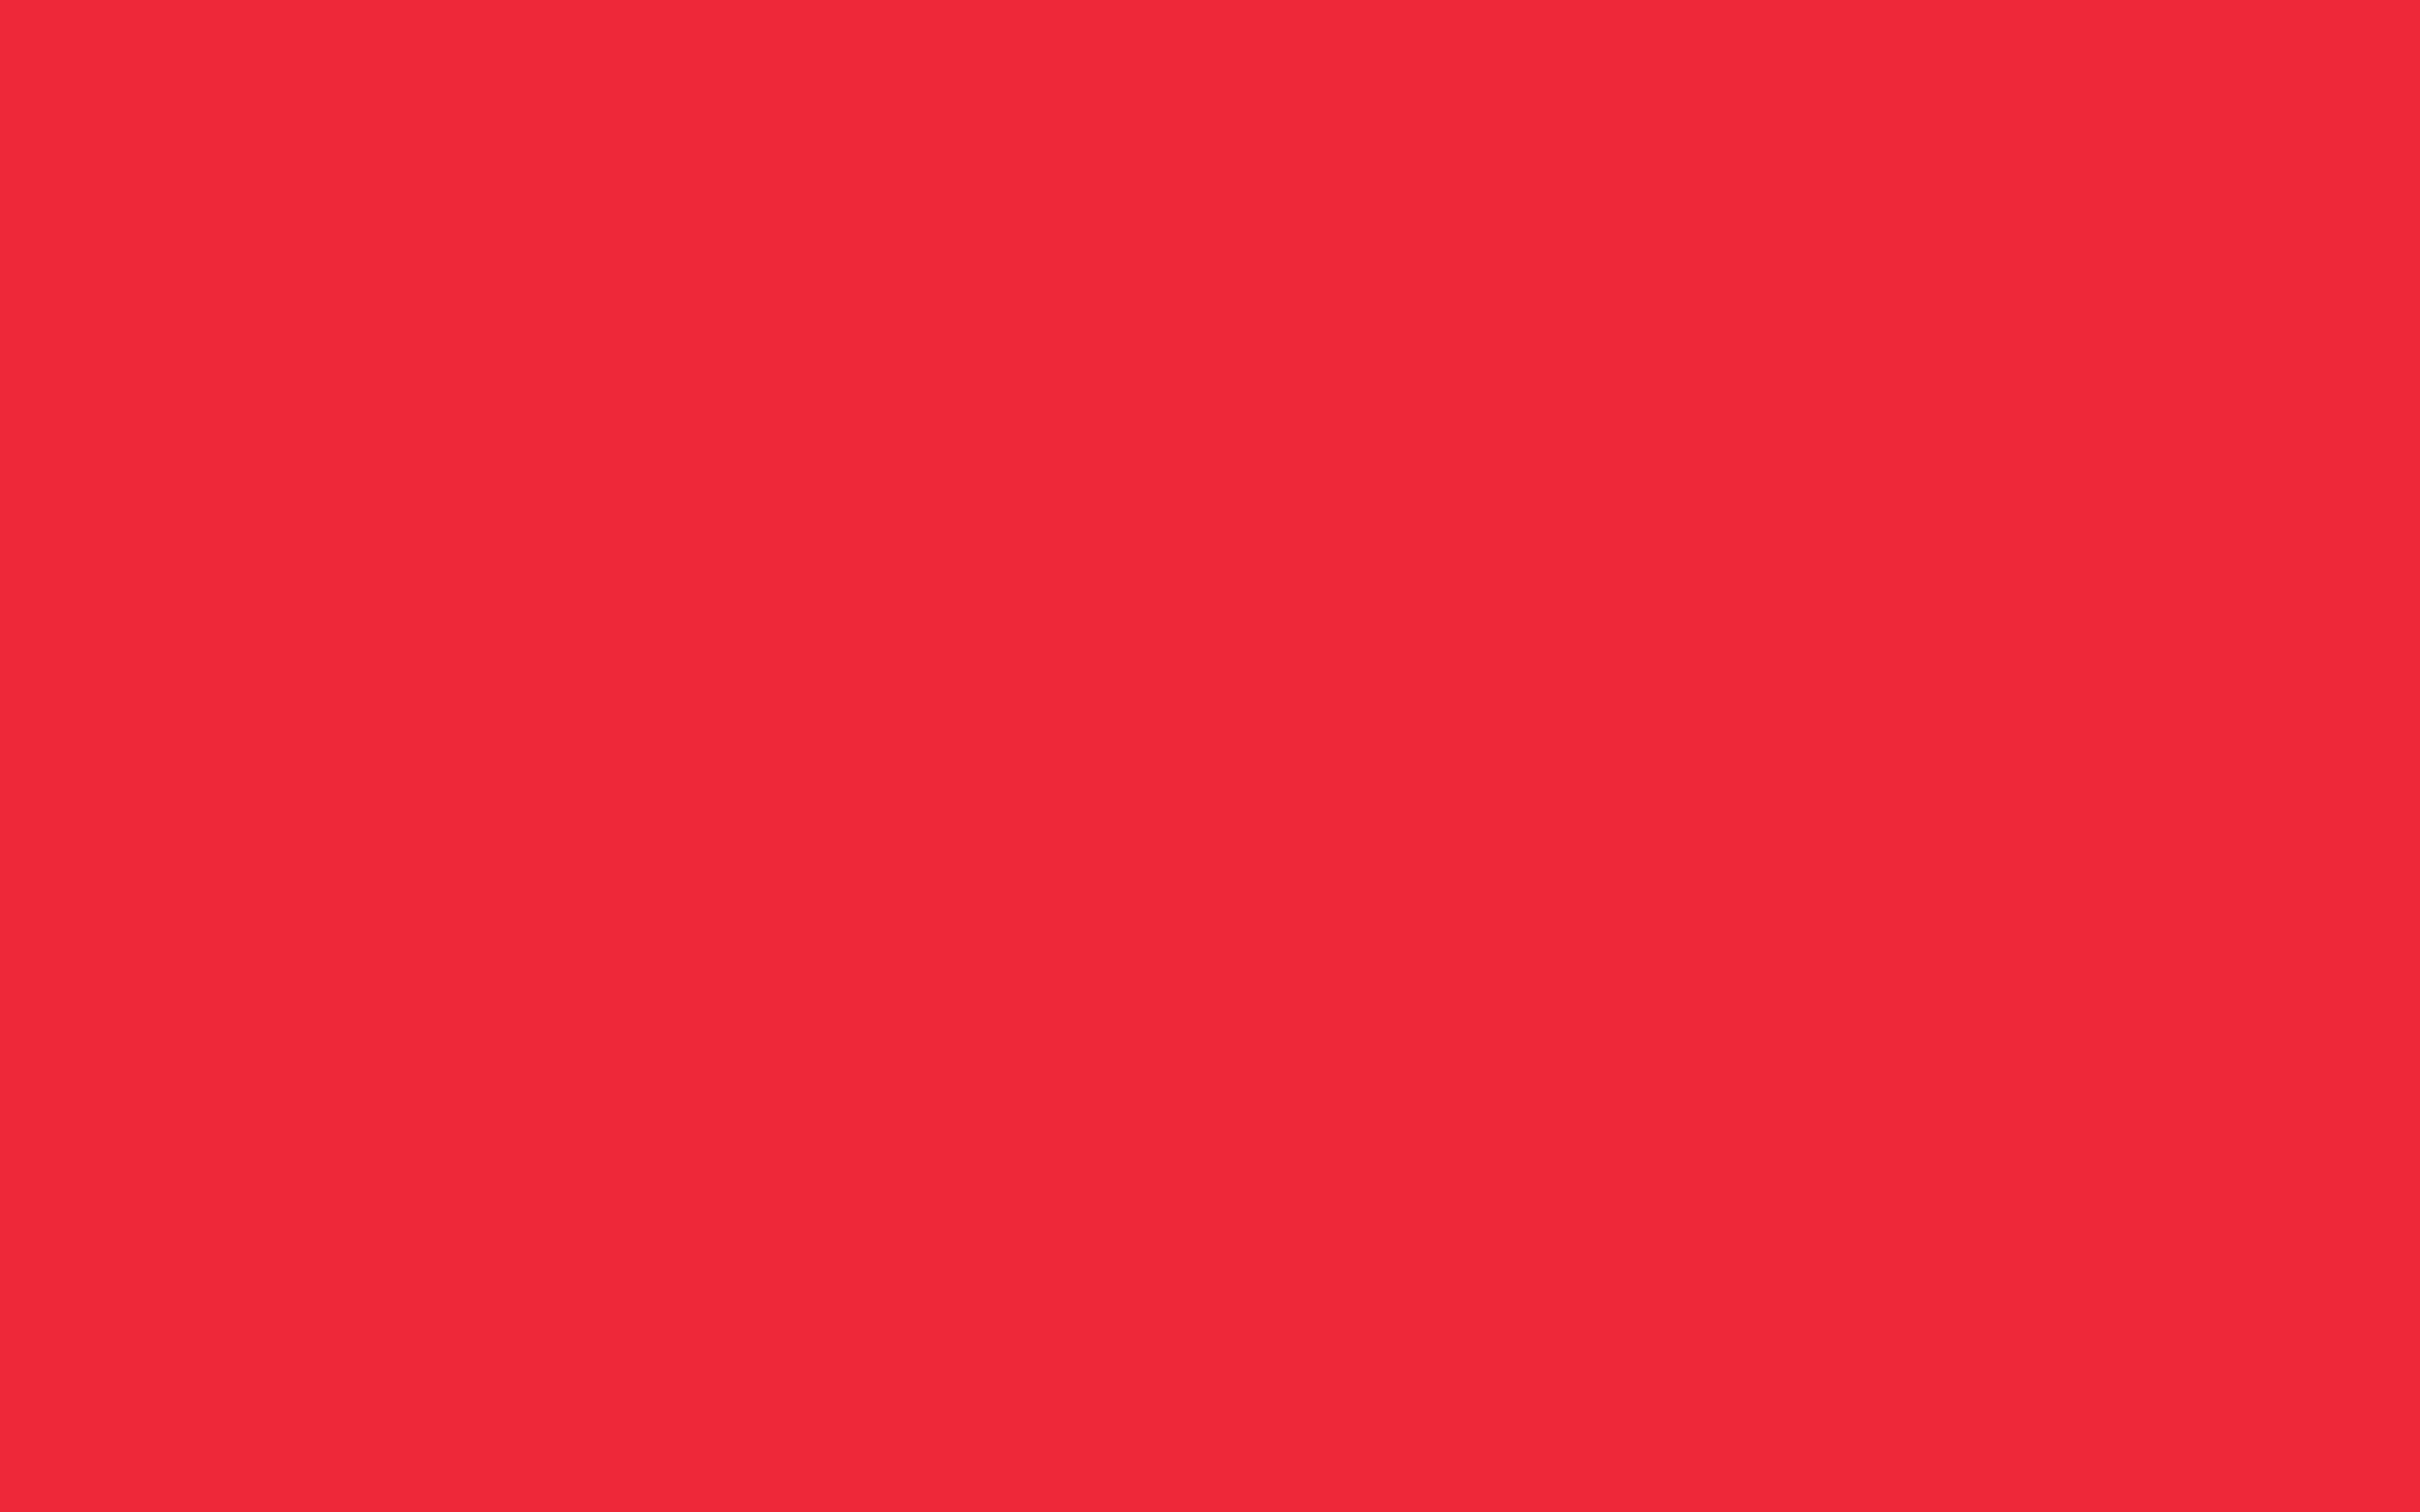 2880x1800 Red Pantone Solid Color Background